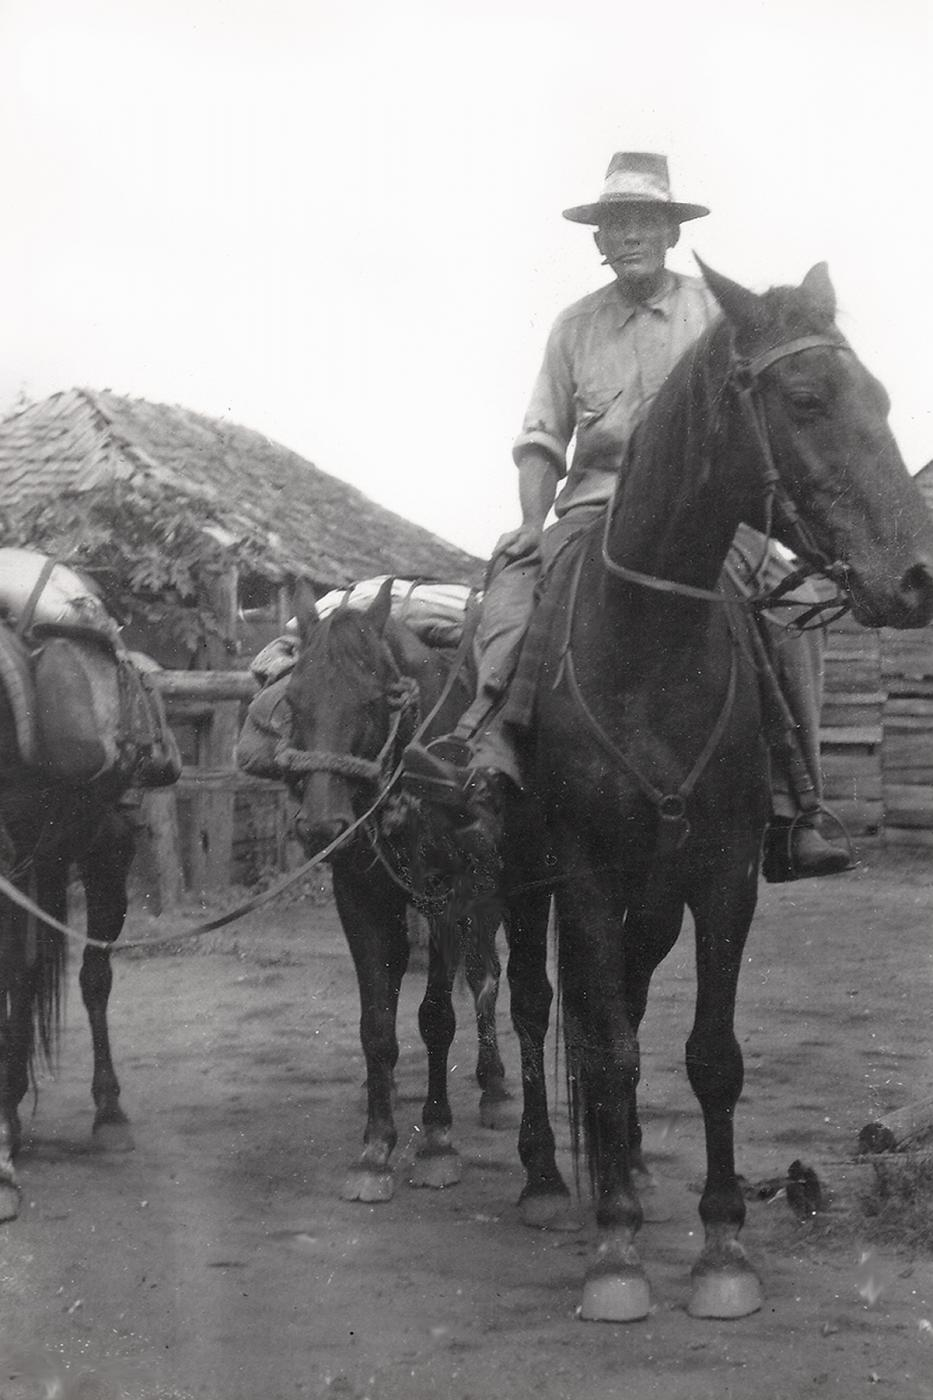 Black and White photograph of William Blair Campbell in the Kilburnie Saddling Yard with his bay horses.  He is riding one, and leading two packhorses loaded with gear.  He wears a wide-brimmed hat and work clothes, and is smoking a cigarette.